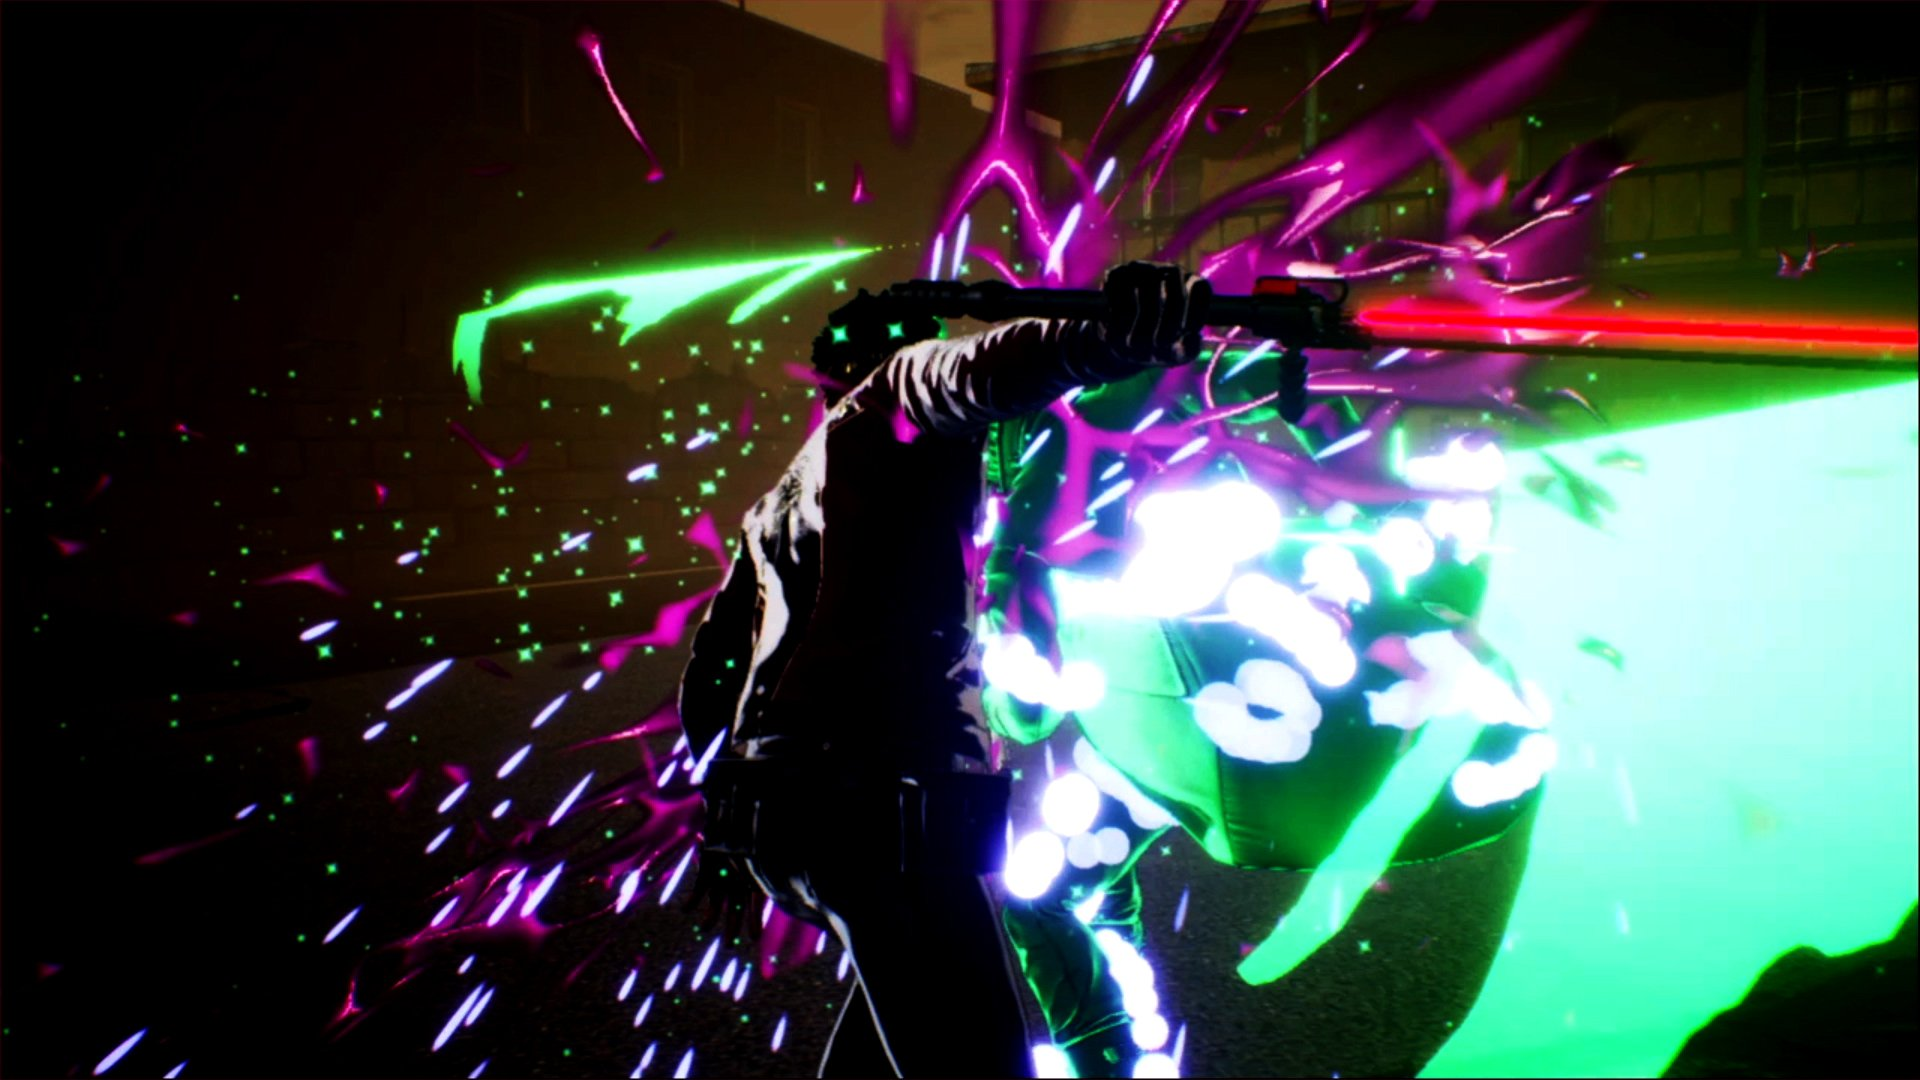 New gameplay of No More Heroes 3 shown by Suda51